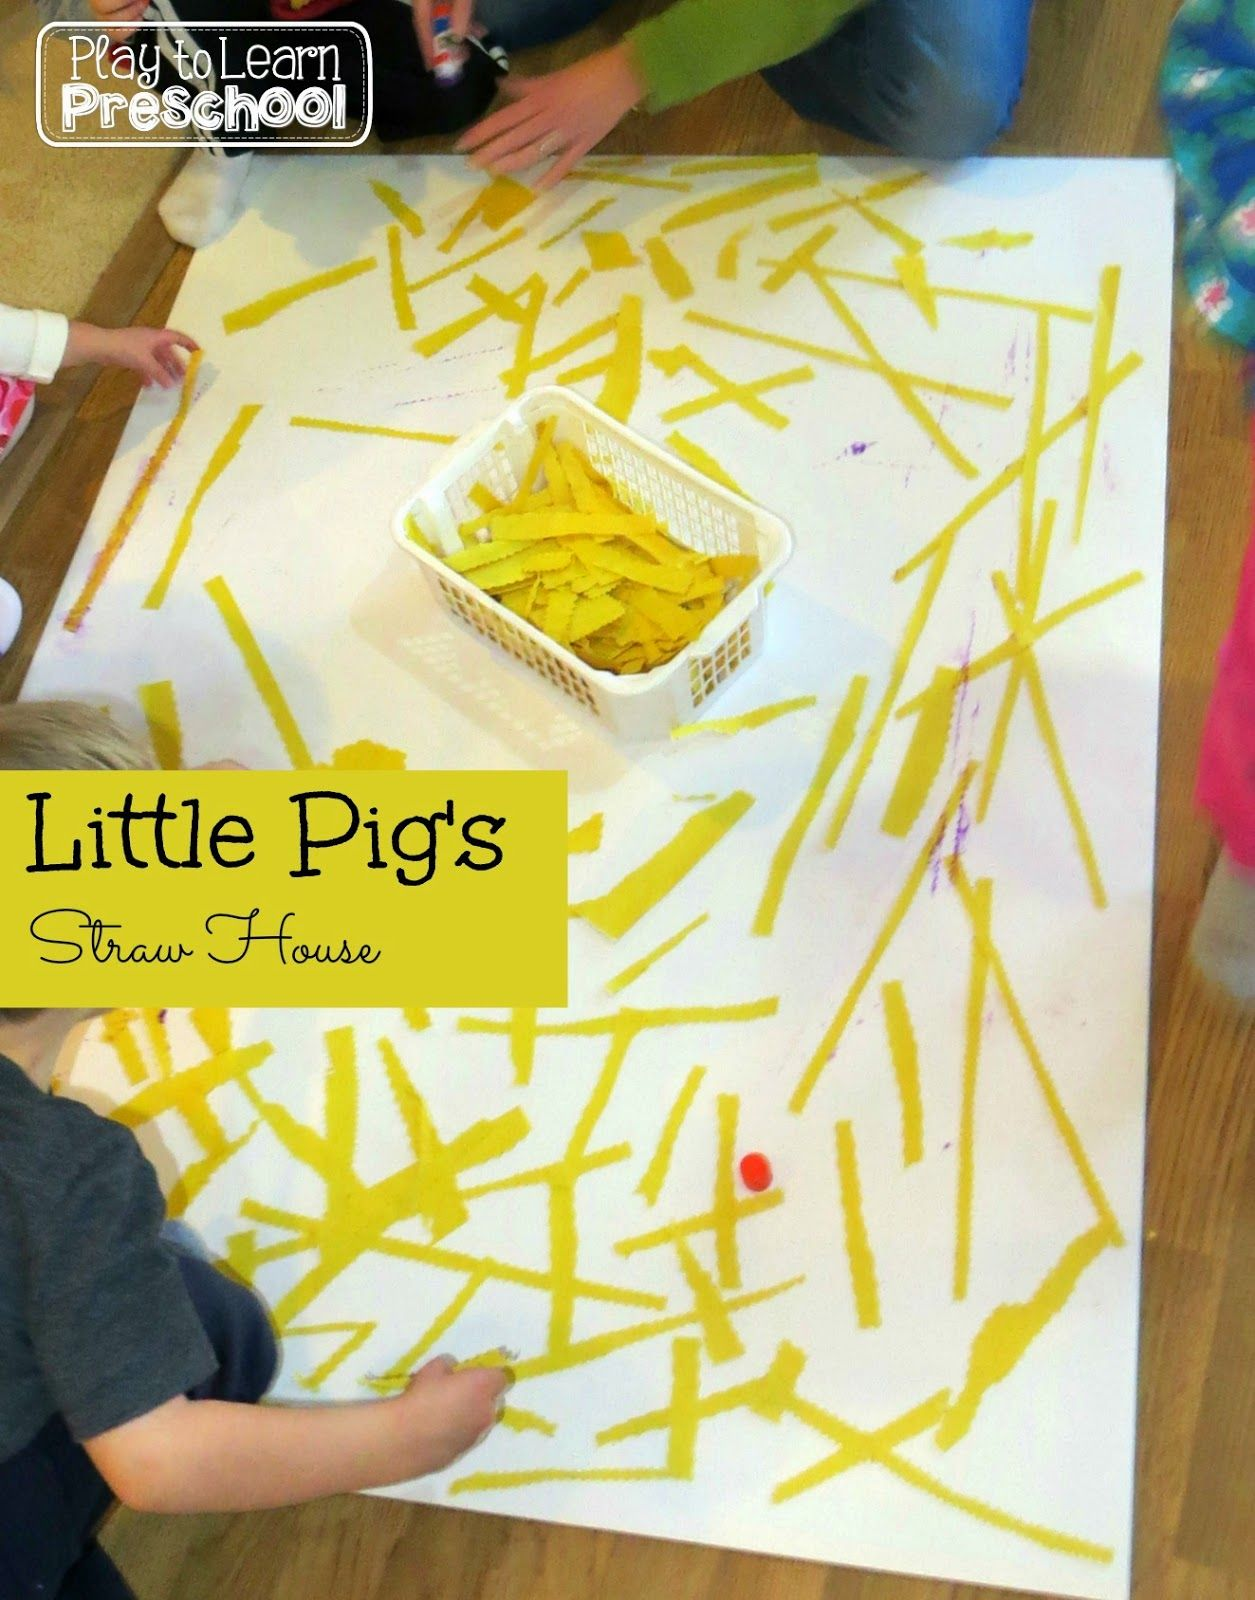 The Three Little Pigs' Straw House - Play to Learn Preschool